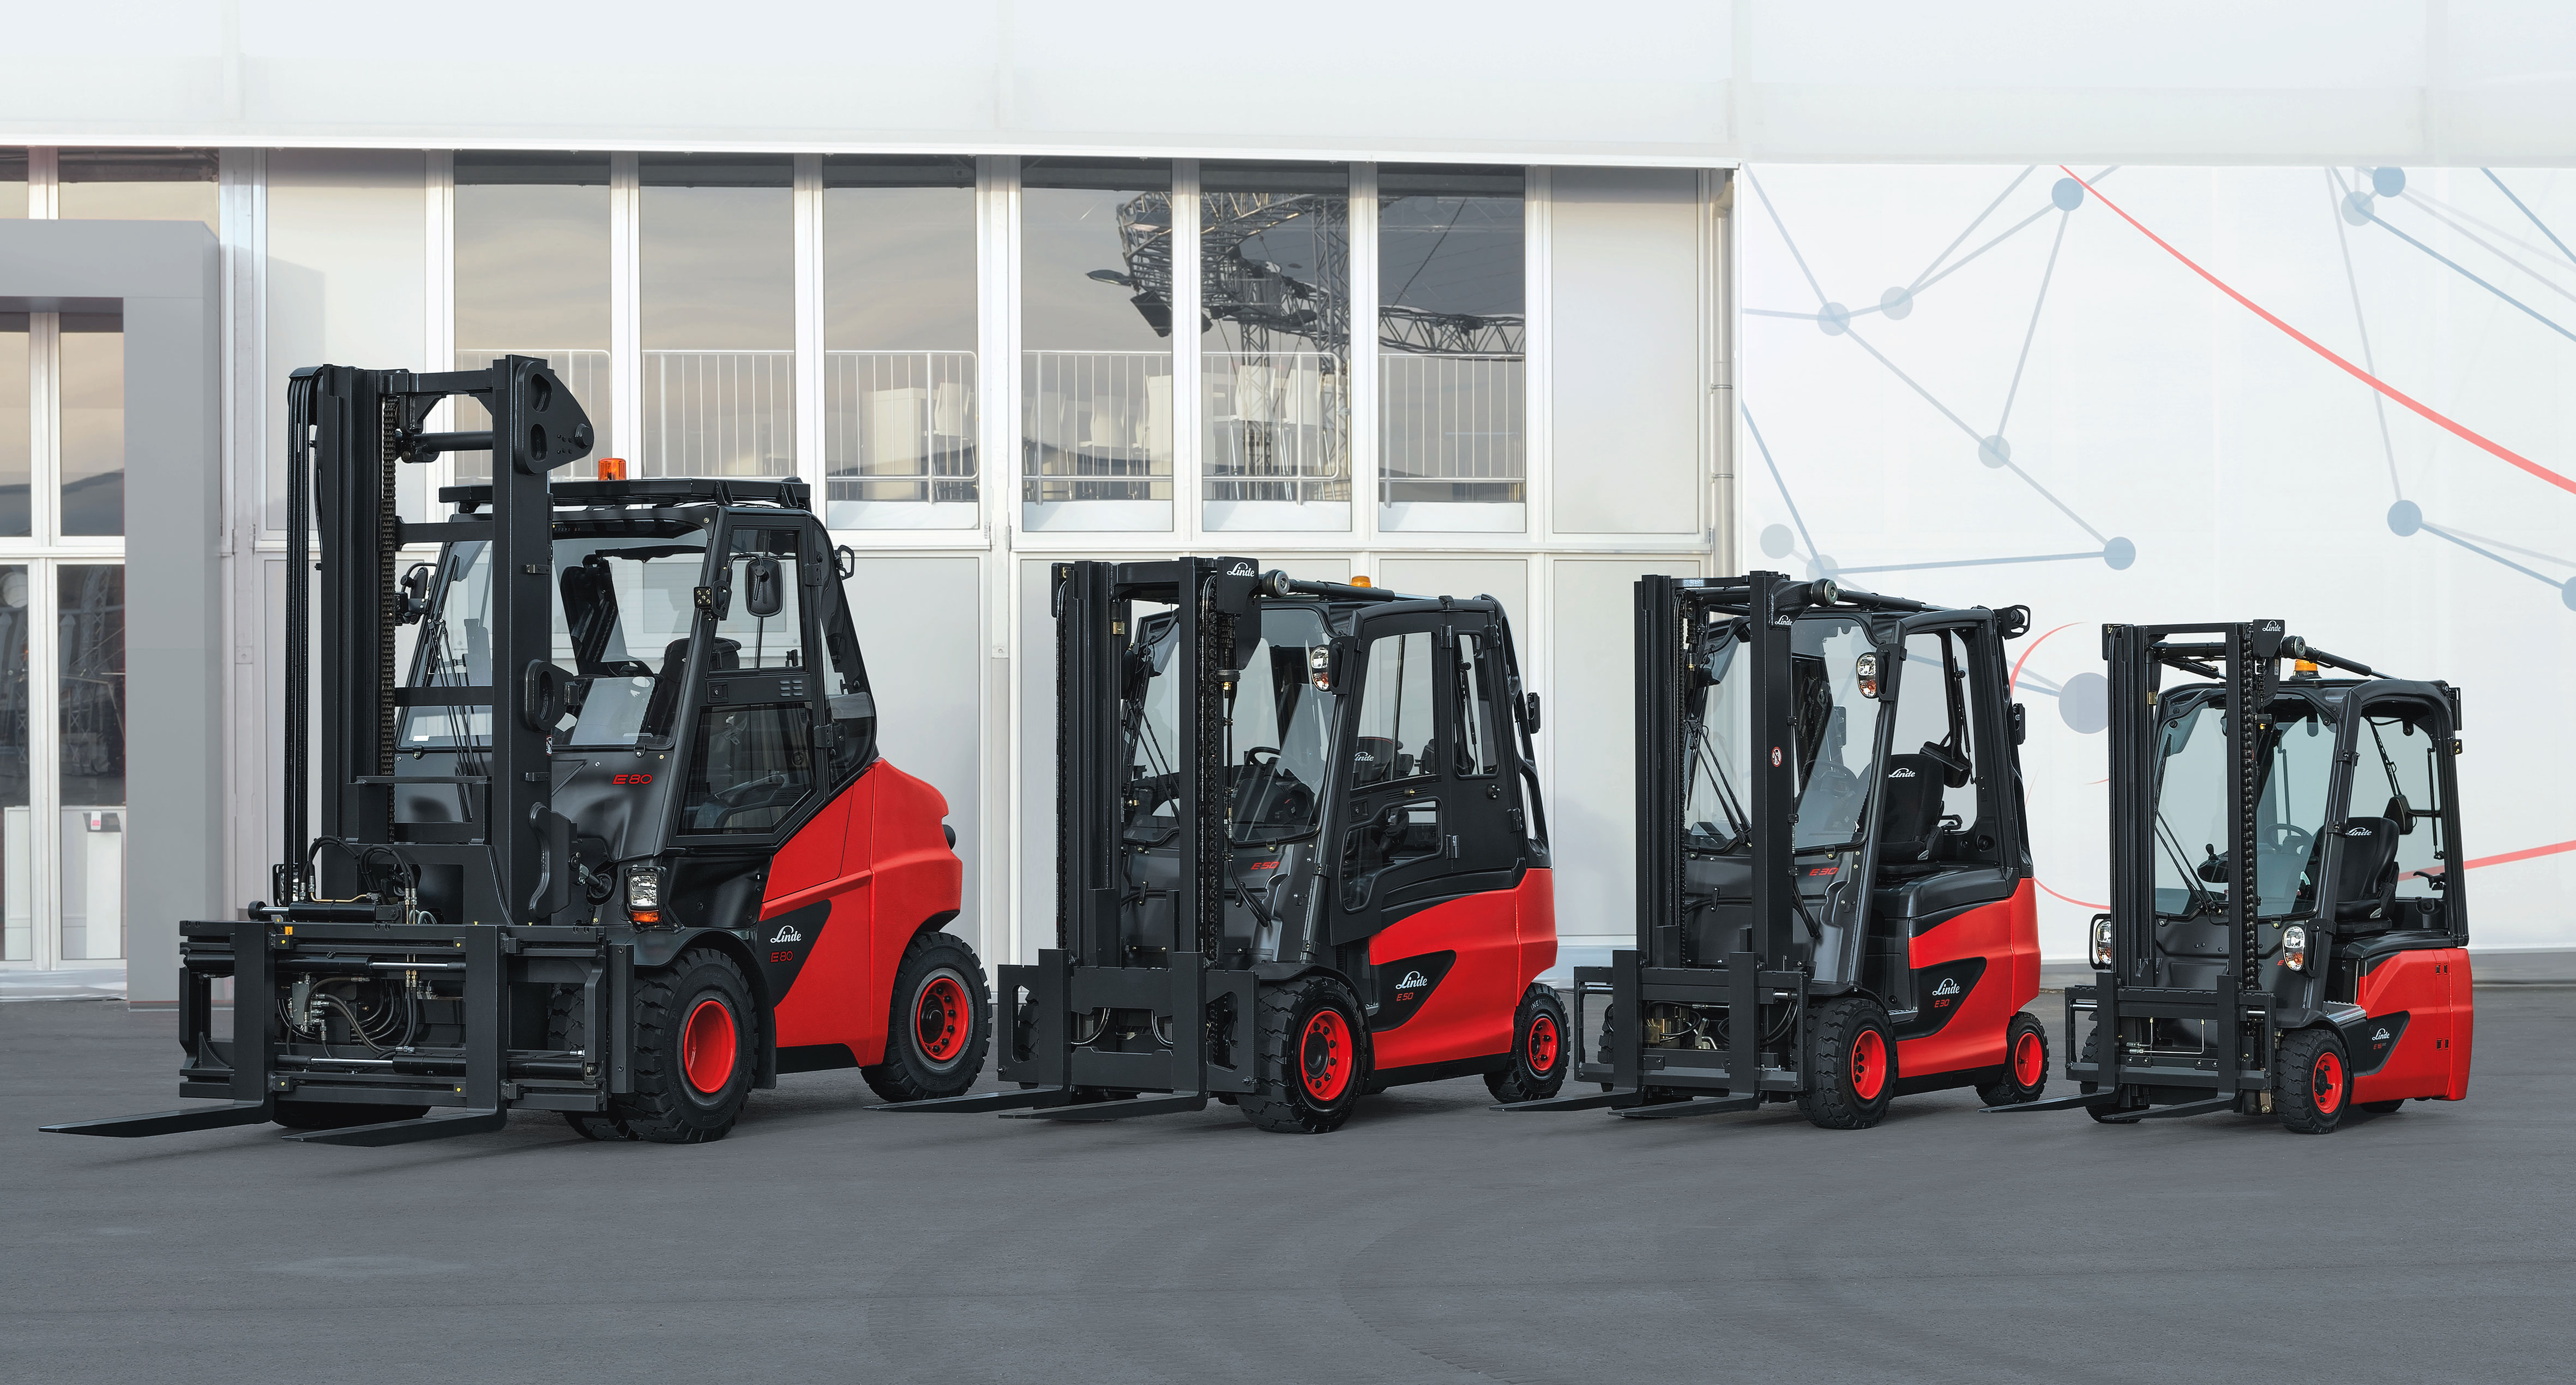 electric forklift trucks from linde material handling. Black Bedroom Furniture Sets. Home Design Ideas